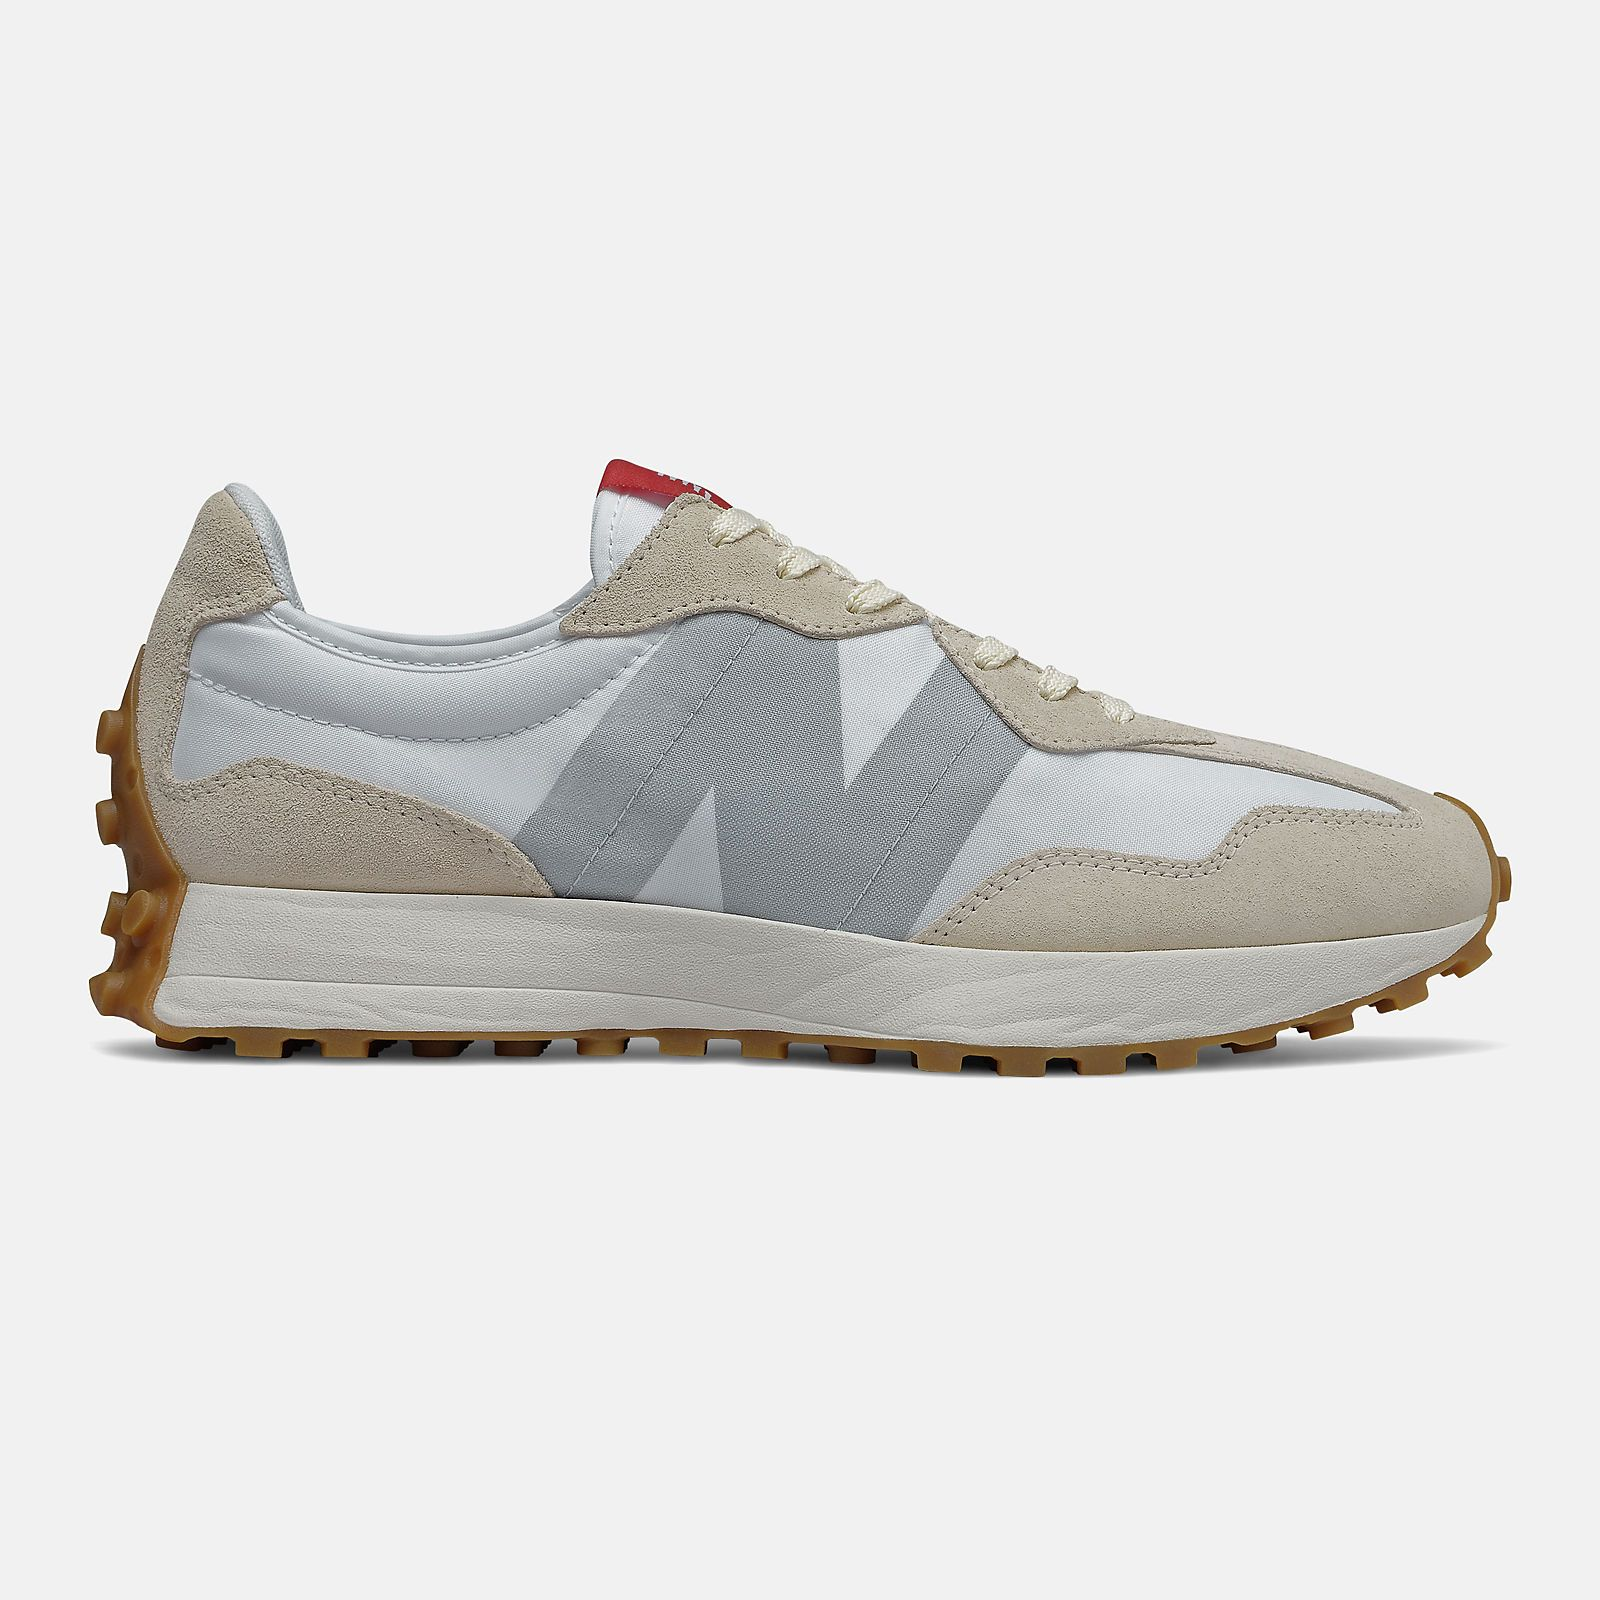 New Balance 327 Creme STB SNEAKERS - GRAY